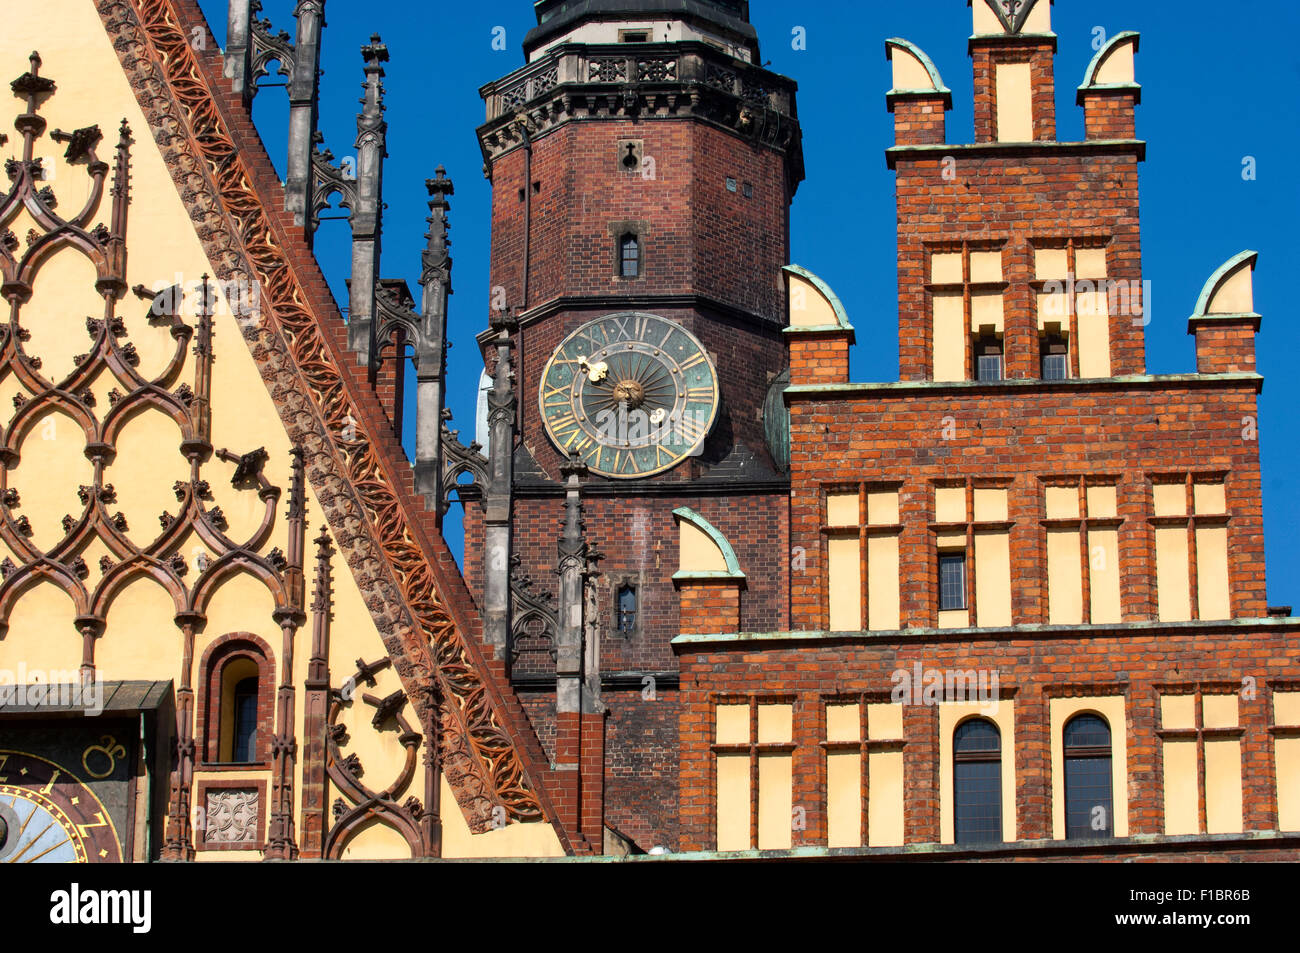 The medieval market square of the Rynek in Wroclaw, Poland. - Stock Image